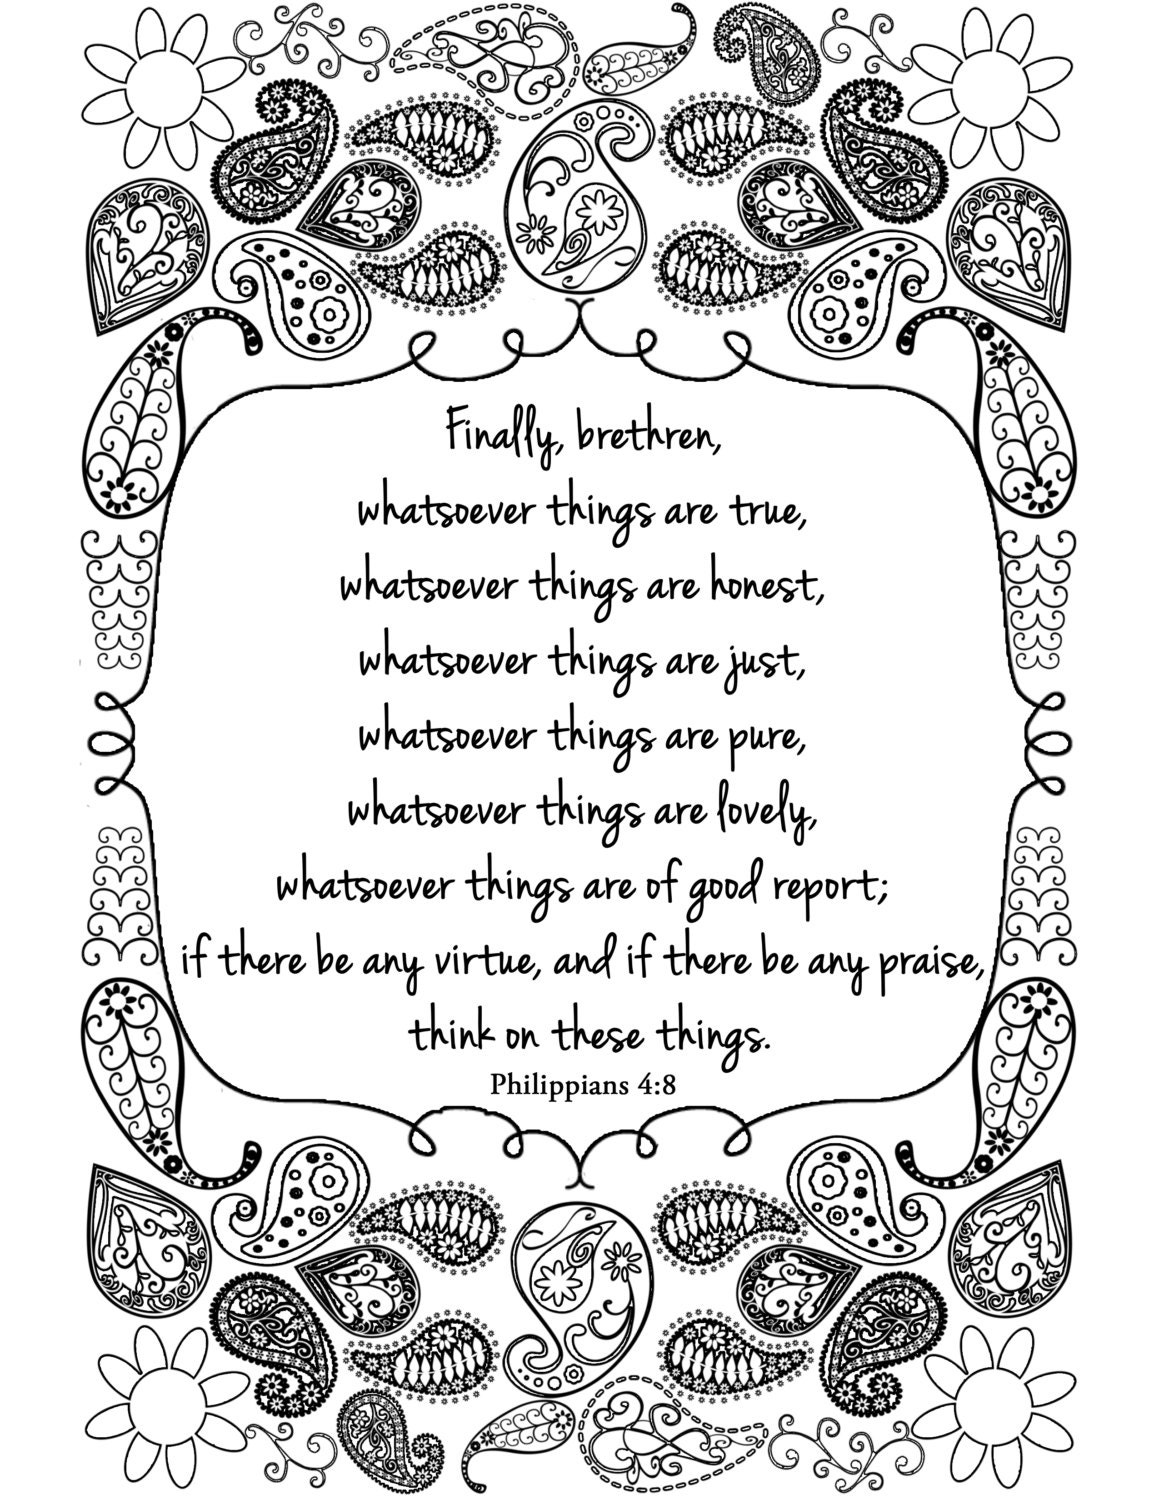 Philippians 4 13 kjv coloring pages coloring pages for Kjv coloring pages